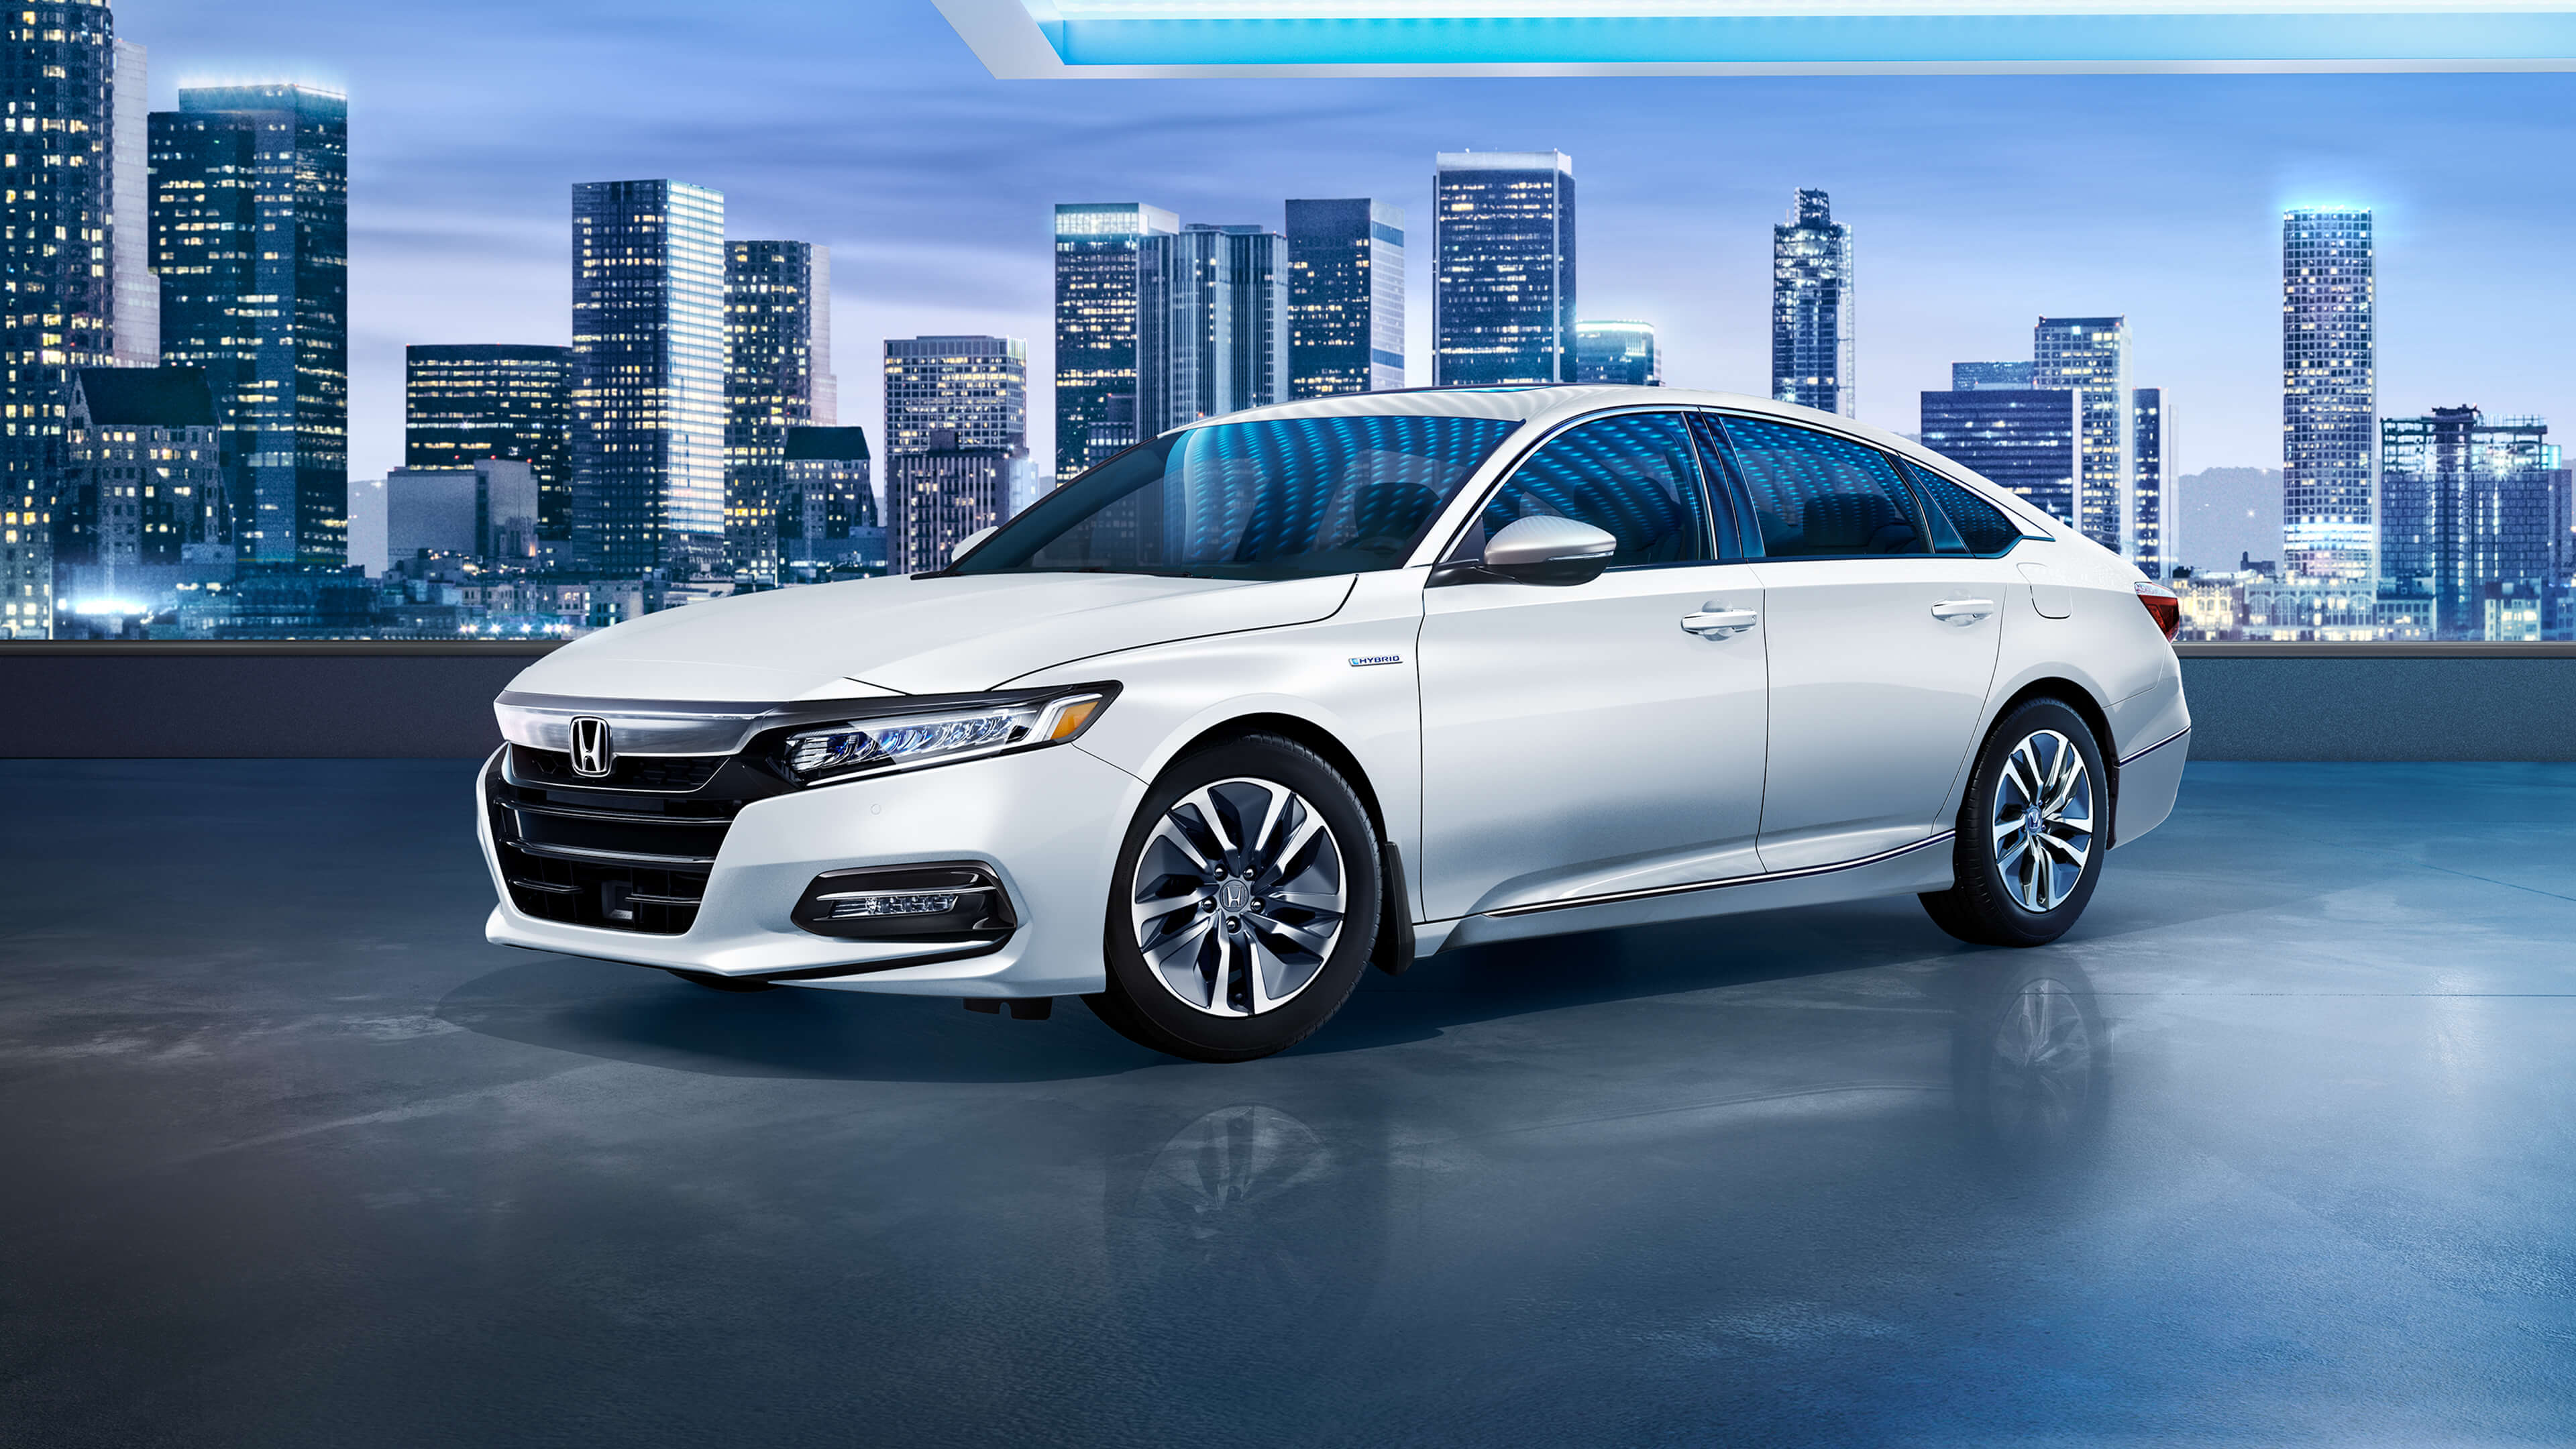 2019 honda accord hybrid exterior set against cityscape